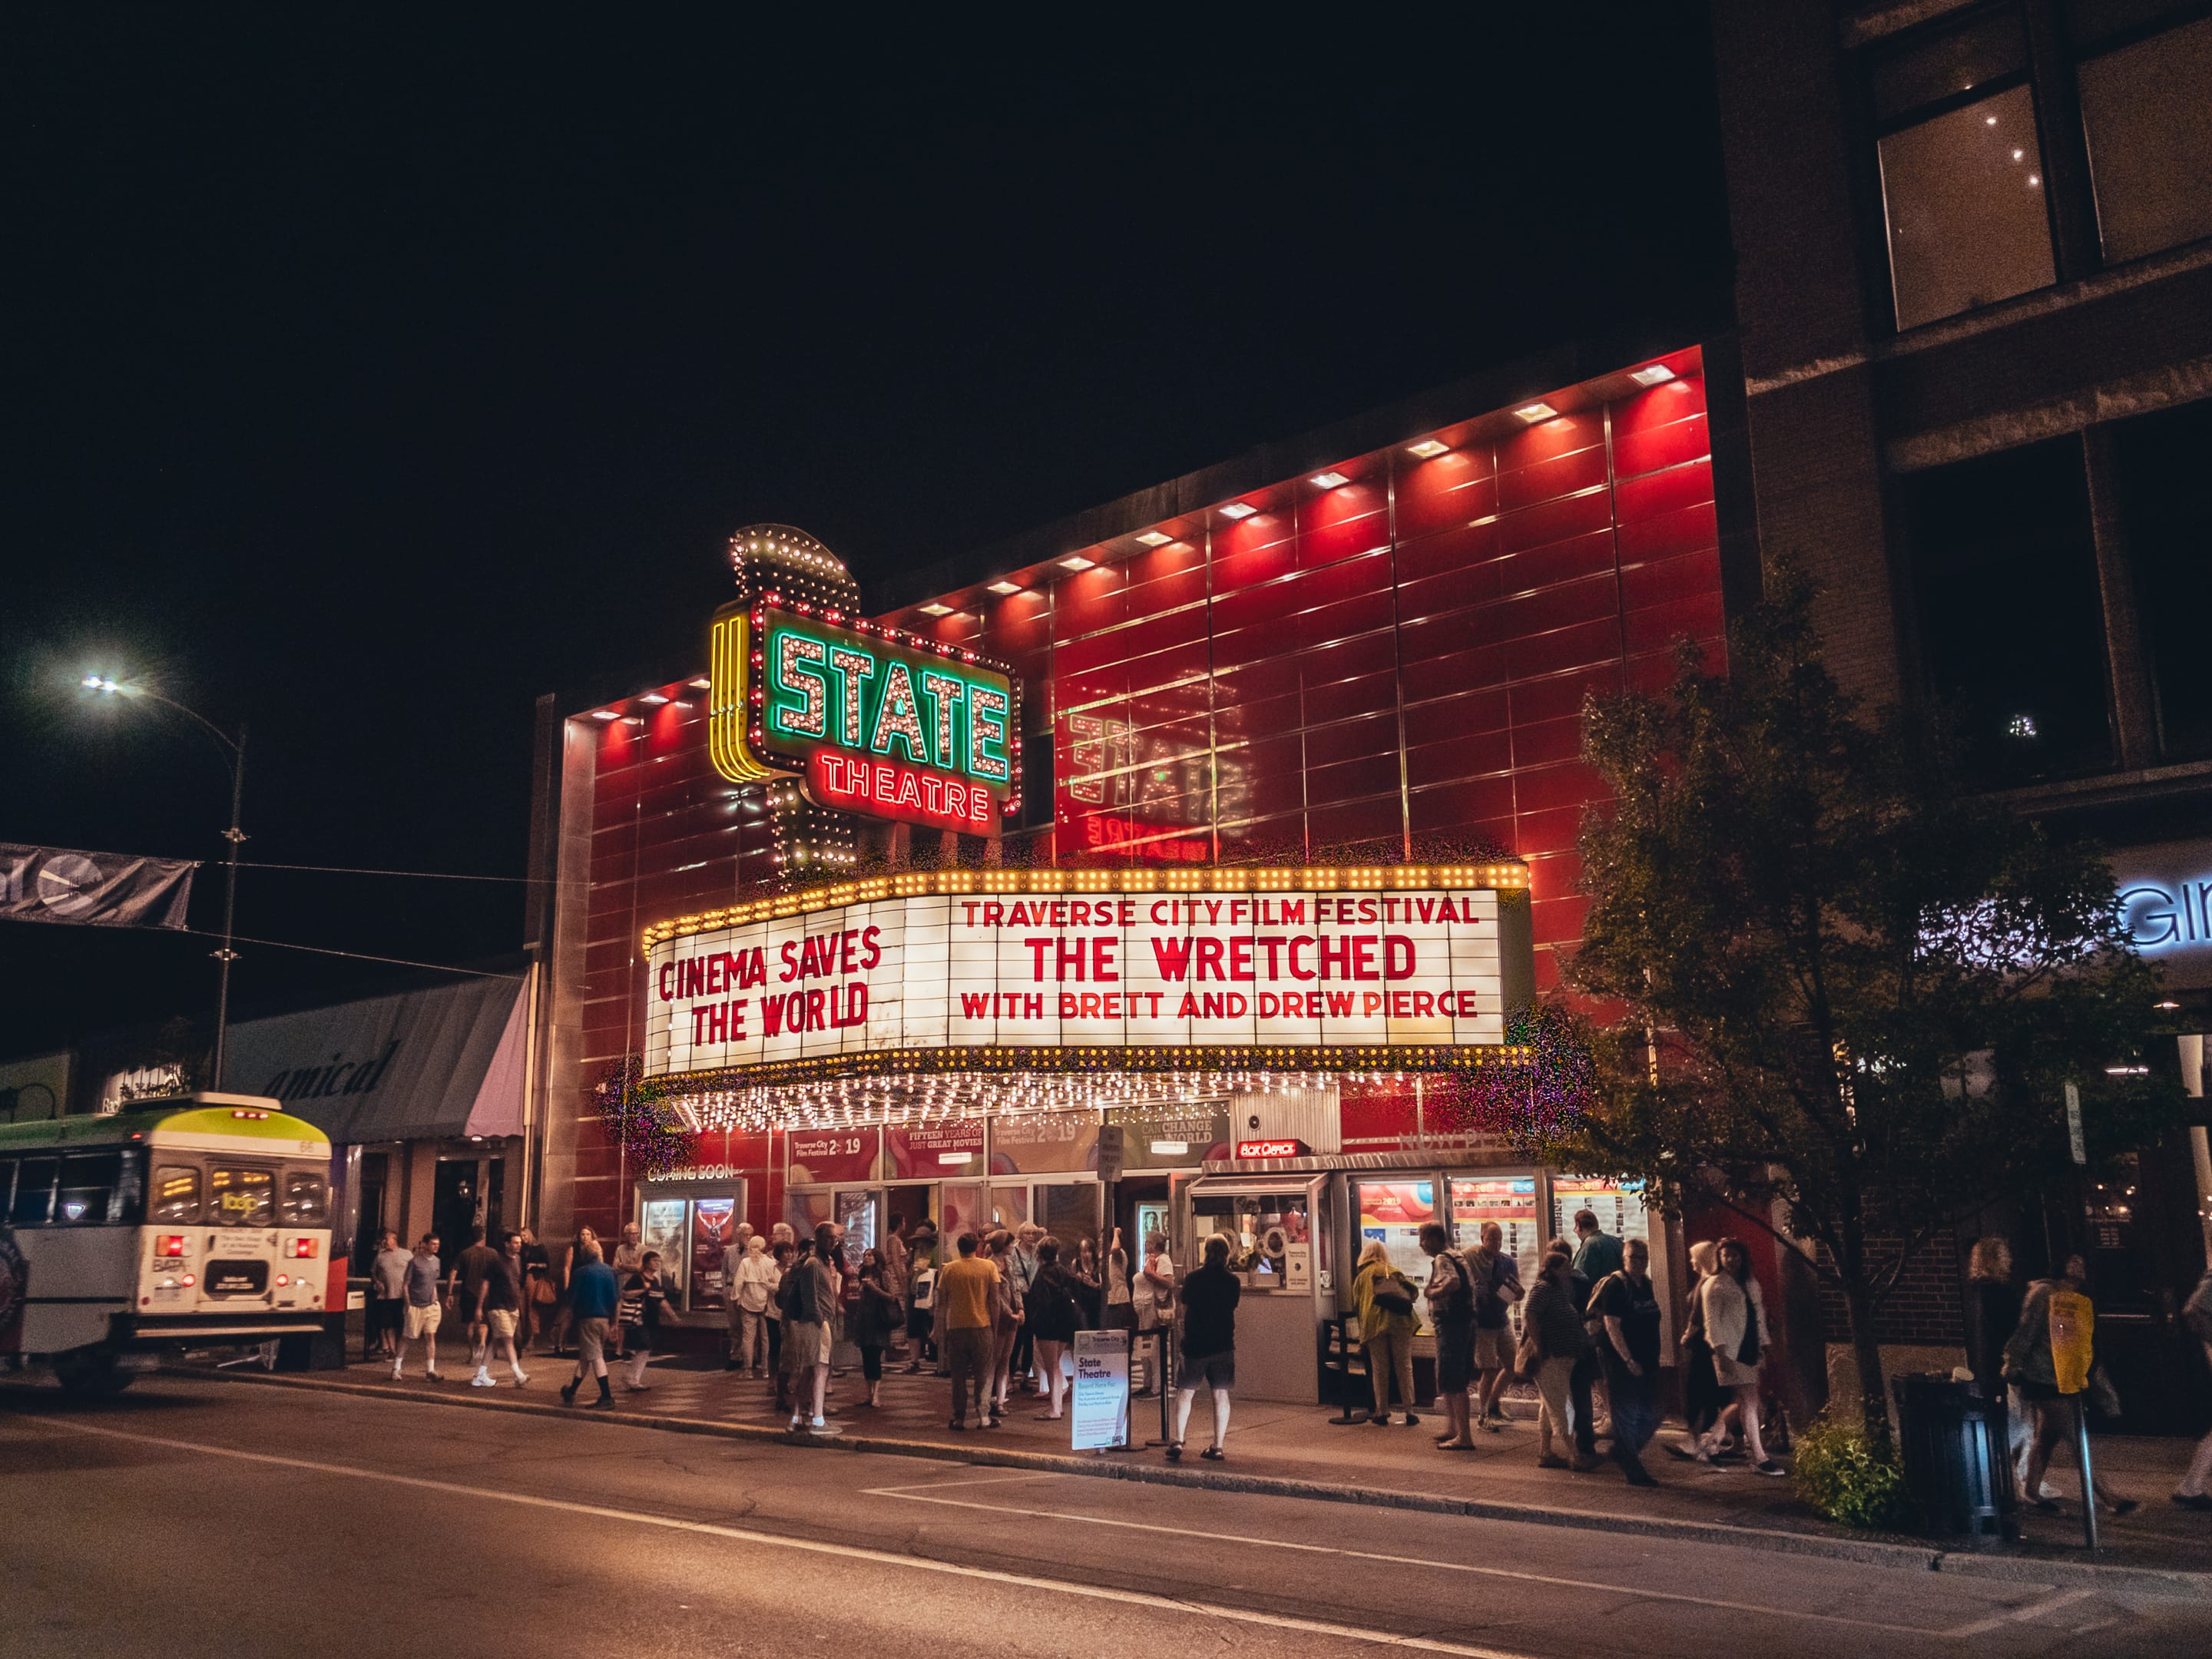 The State Theater in Traverse City